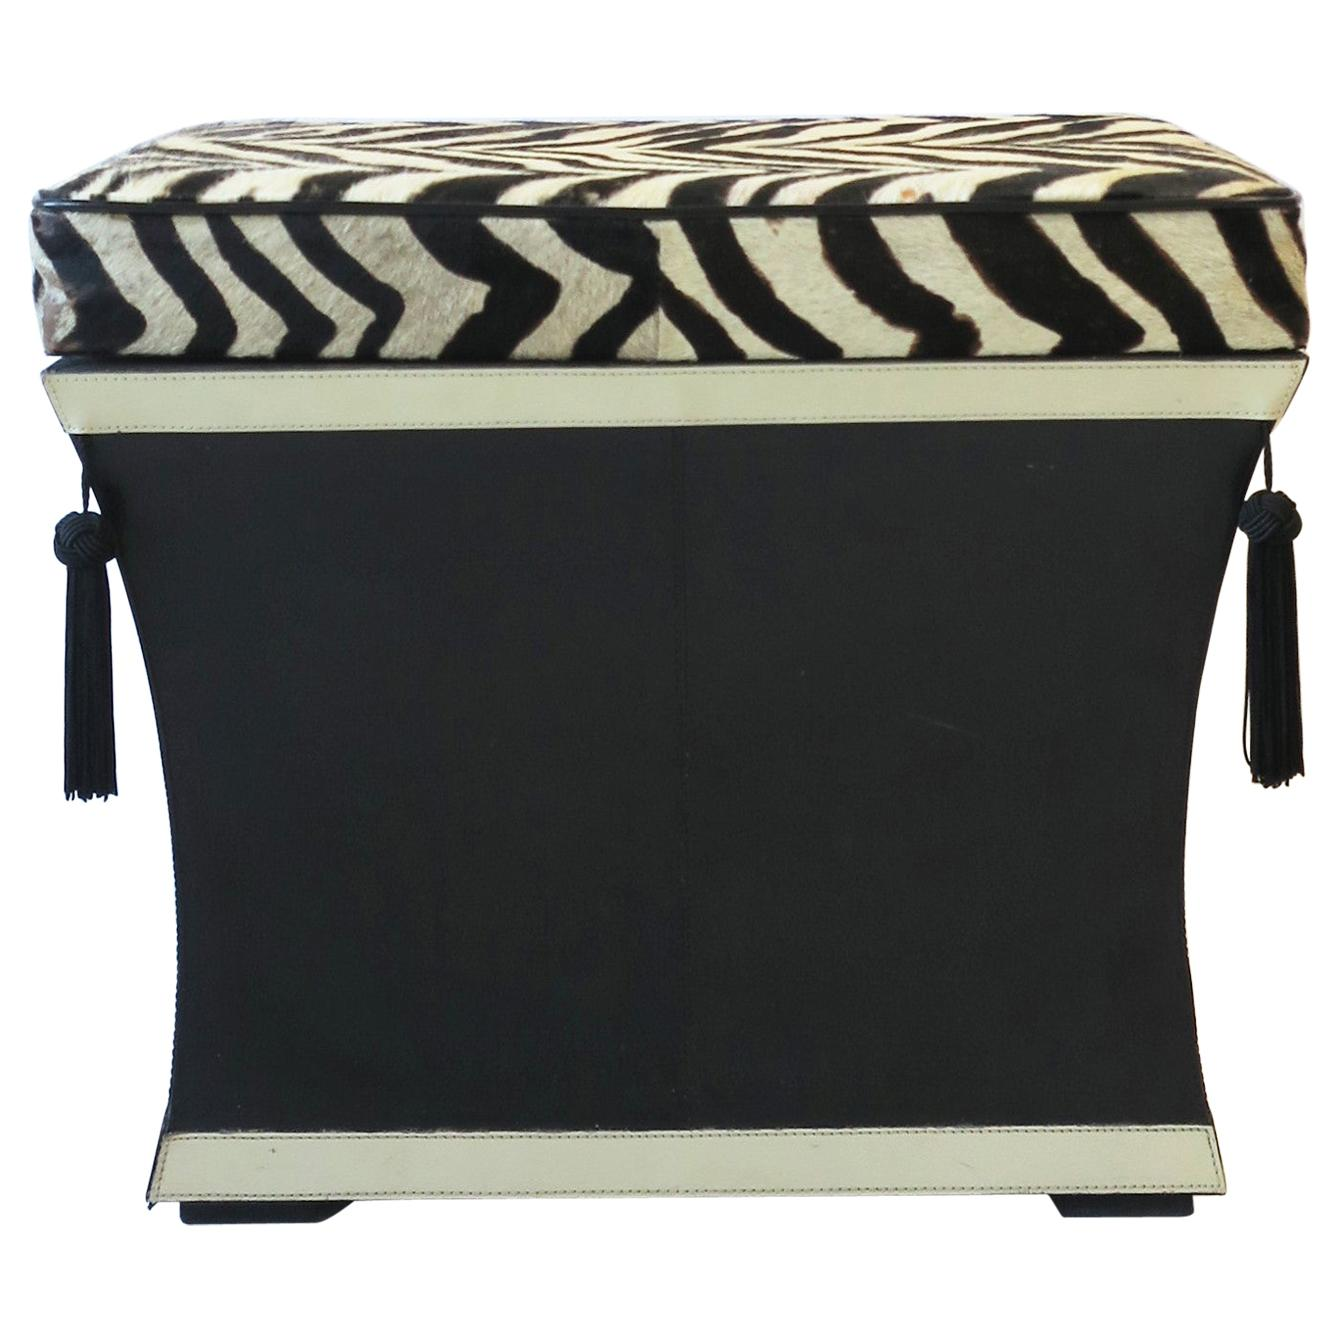 Black and White Zebra Hide Bench or Stool with Tassels and Storage, circa 1990s